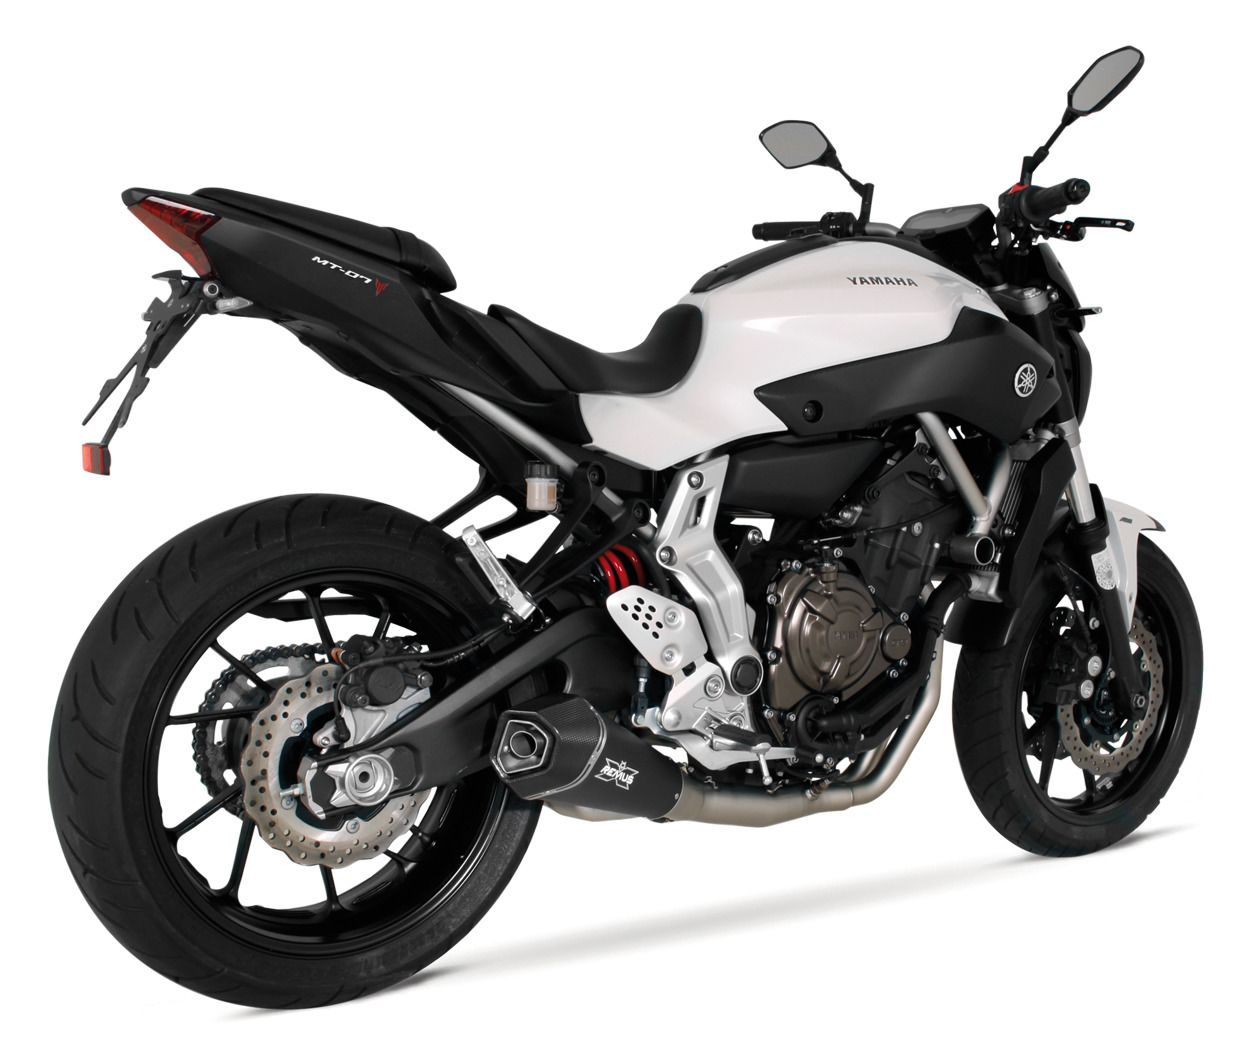 Remus hypercone exhaust system yamaha fz 07 moto cage for Yamaha exhaust systems